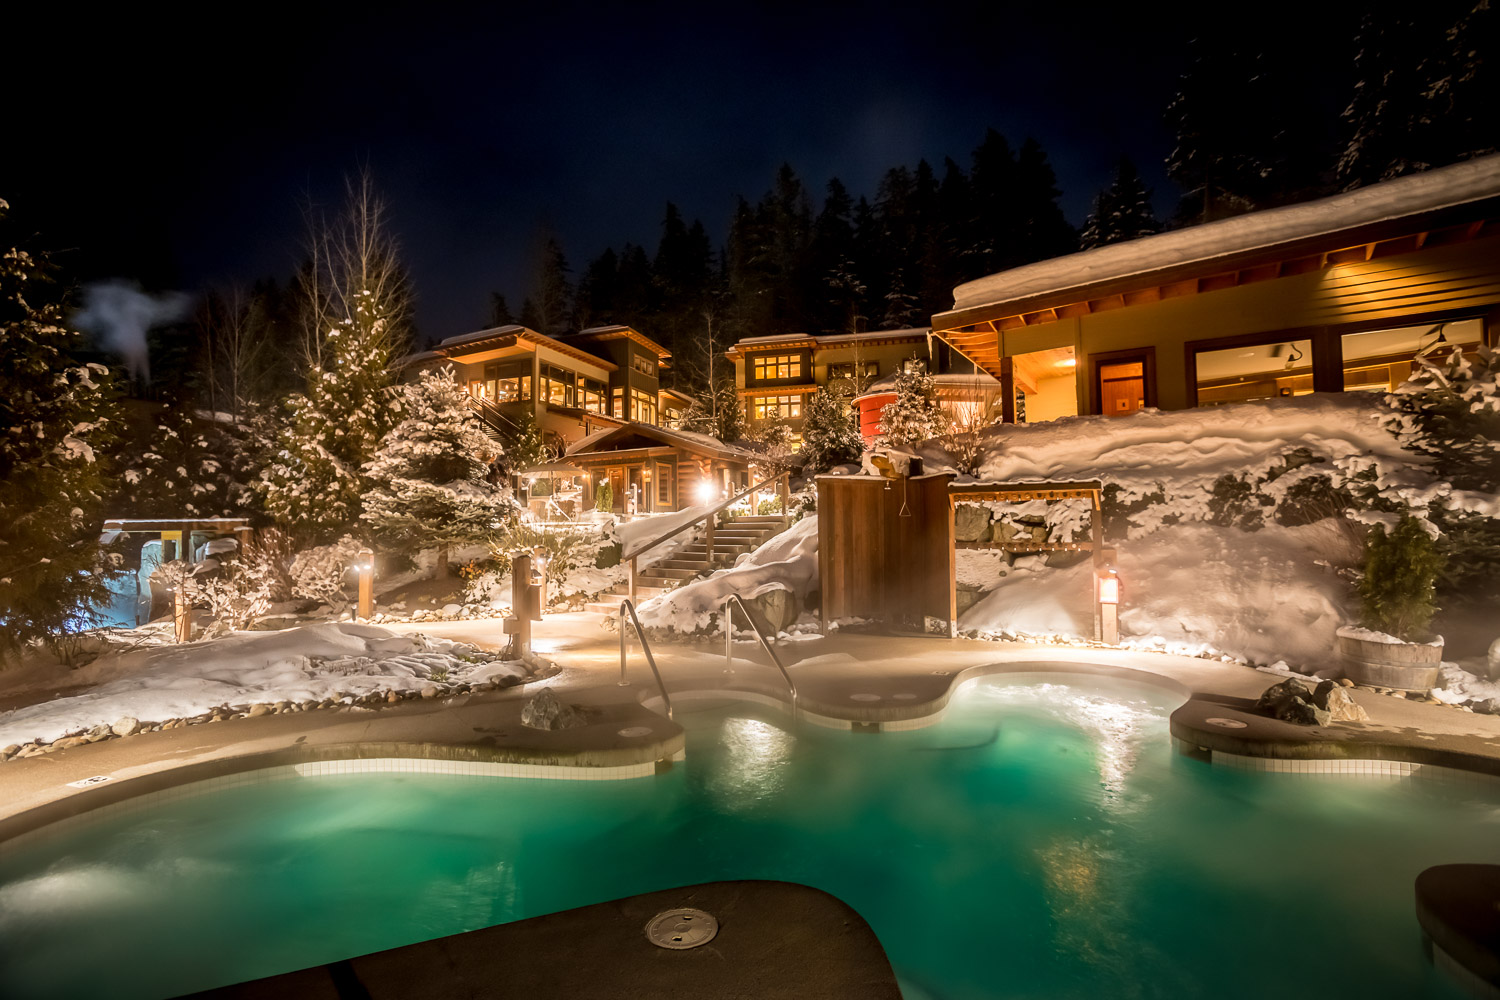 Scandinave Spa at night